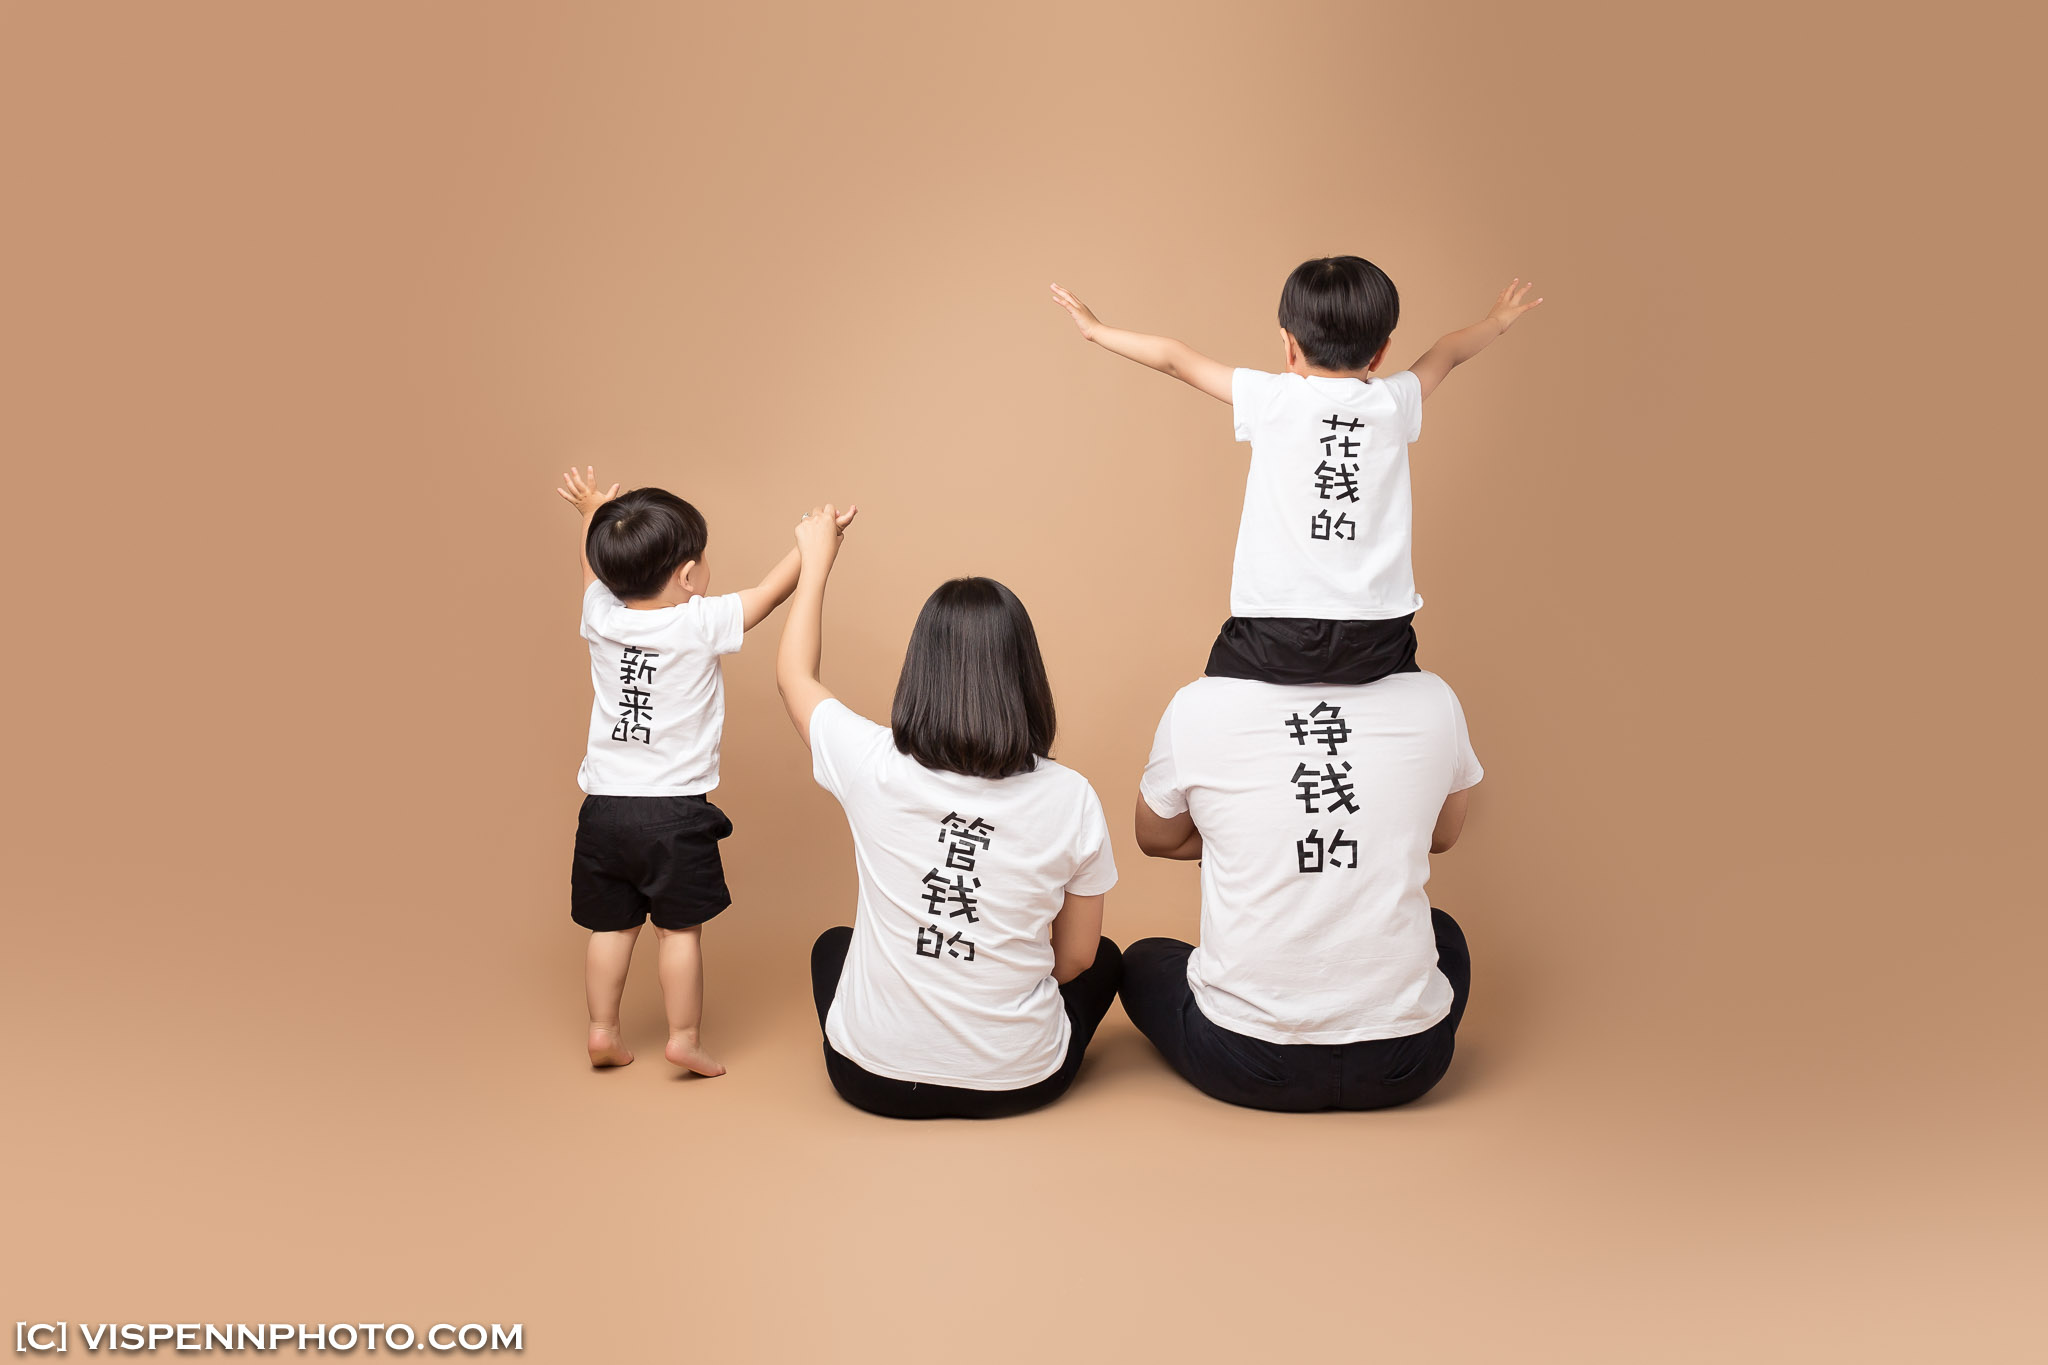 Melbourne Newborn Baby Family Photo BaoBao VISPENN 墨尔本 儿童 宝宝 百天照 满月照 孕妇照 全家福 KIDS VISPENN SusanXie 2715